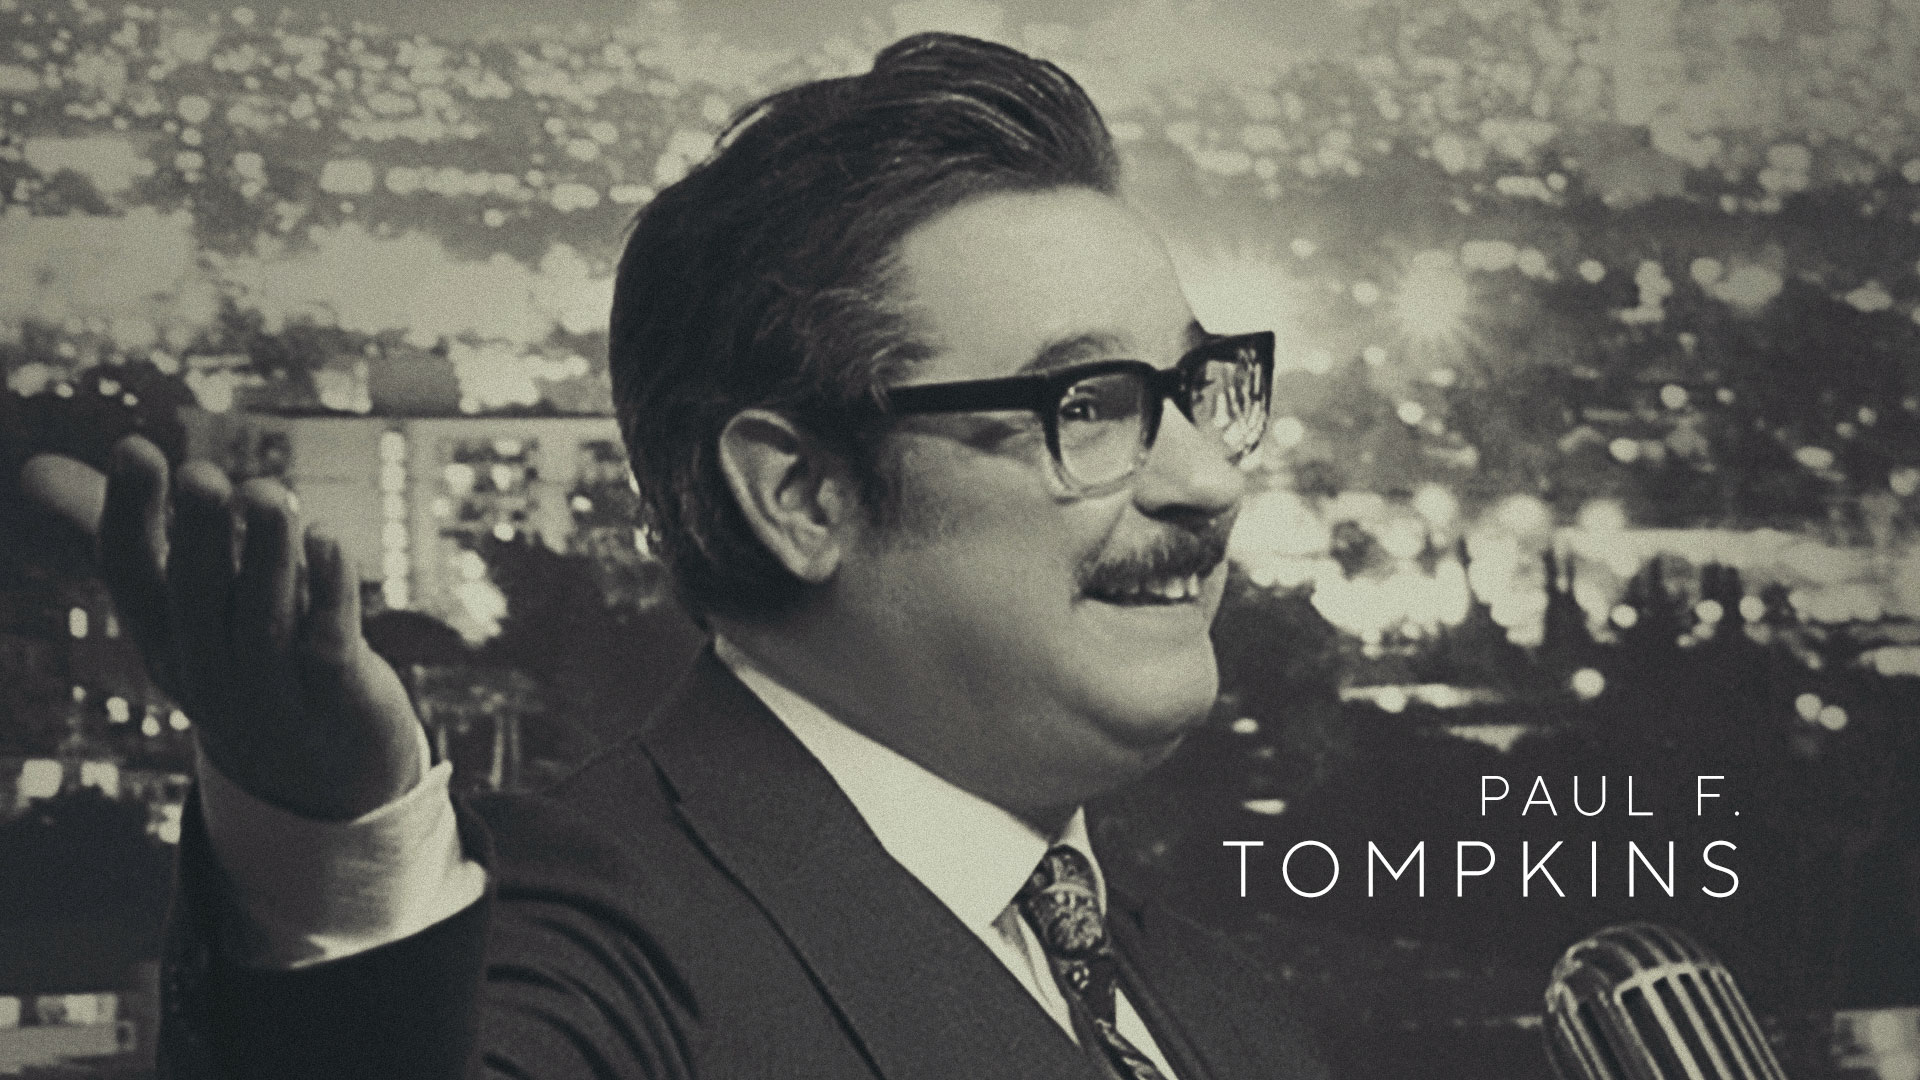 Paul F. Tompkins as Jimmy O'Malley in